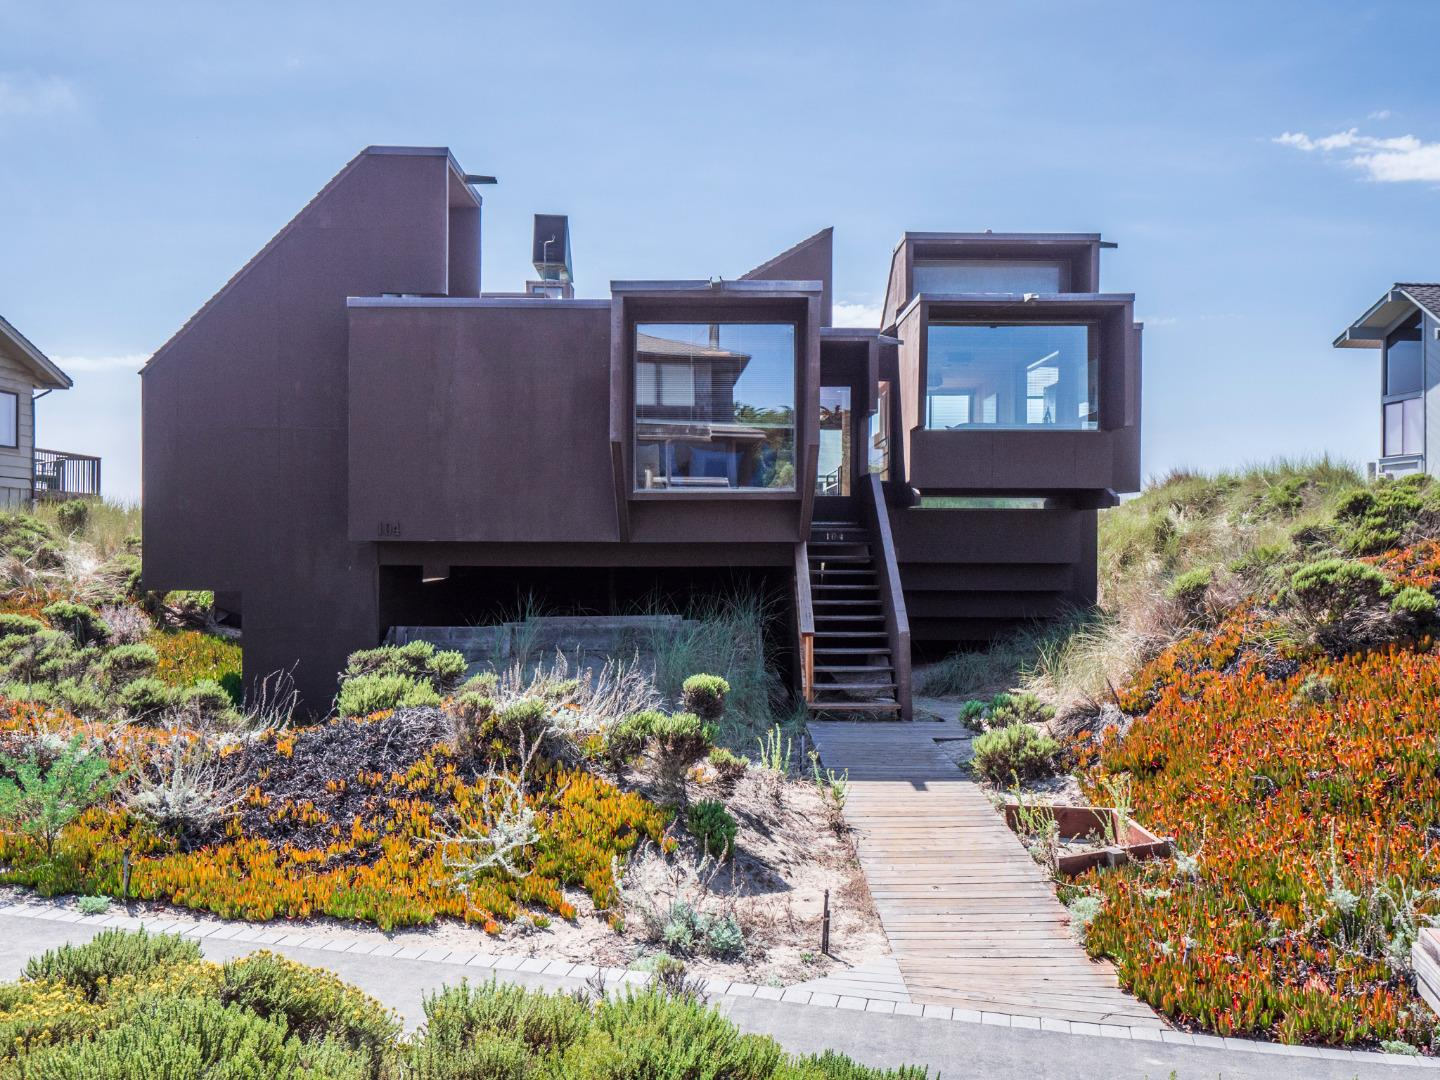 Beloved and unique beach house located on coveted front row of  beautiful and peaceful Pajaro Dunes. This  2049 square foot 3/3 home is perched on the dunes,  with an ideal ocean front location. The house is filled with lovely ocean sounds as well as warm, natural sunlight.  The open floor plan allows you to experience the daily views of the ocean and the evening sunsets , a truly treasured experience which has been enjoyed by the same family for over 30 years. The house has a mid century style with wonderful outside/inside California living flair. Excellent separation of space and several special nooks to explore make this home ideal for multi-generational families. There is plenty of room for everyone - wonderful family home to share with all your friends. This house lives like an every day home or a perfect vacation spot. Not to be missed!